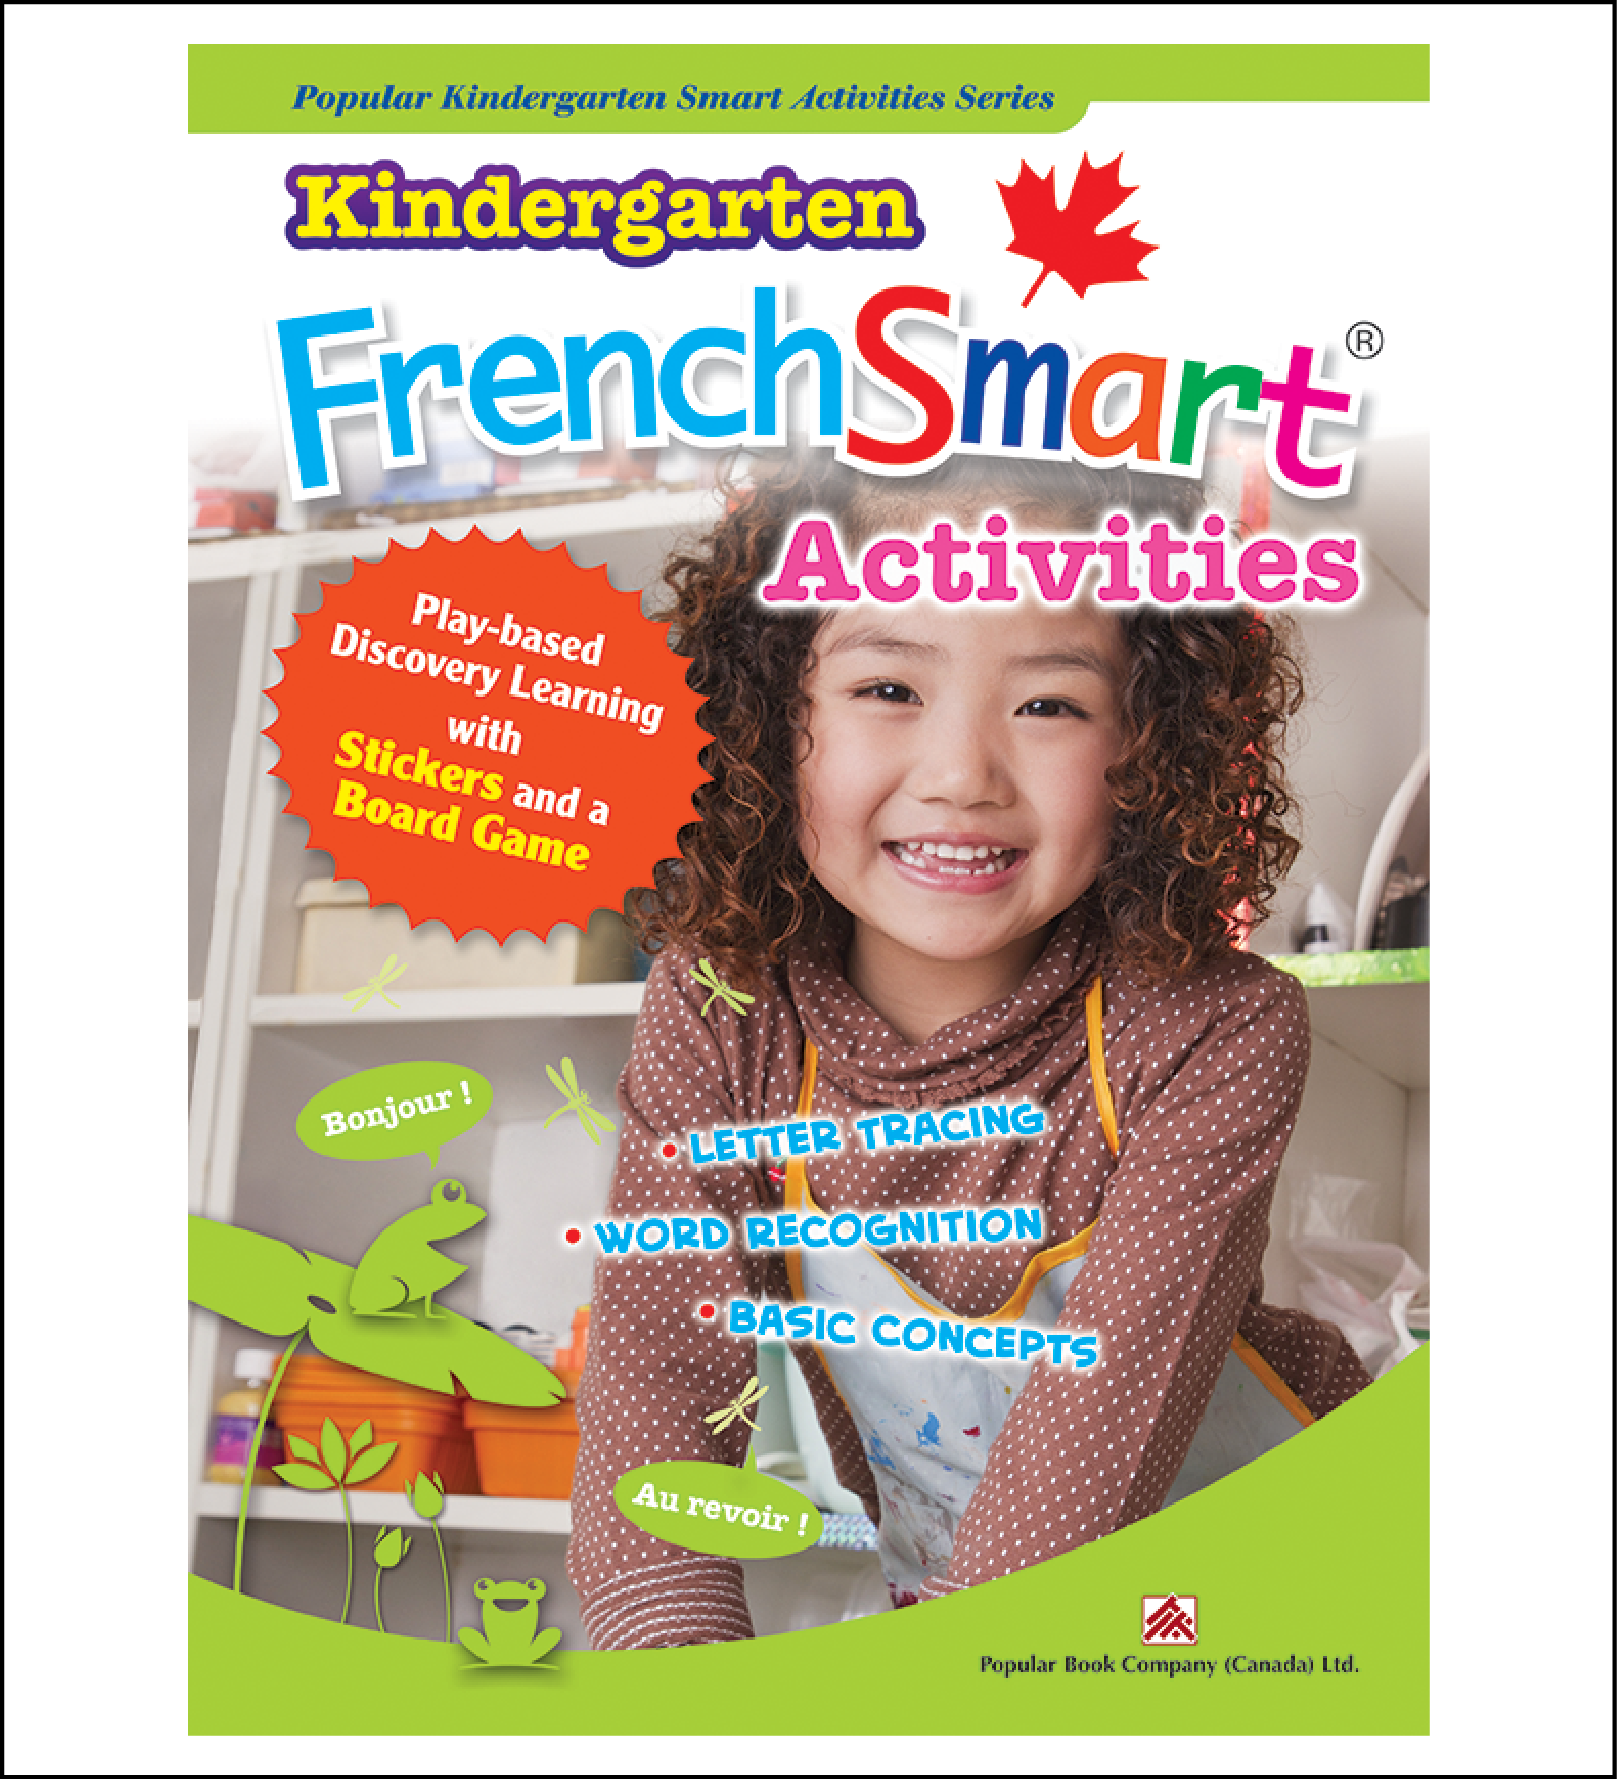 Activtiy book for kids Kindergarten FrenchSmart Activities